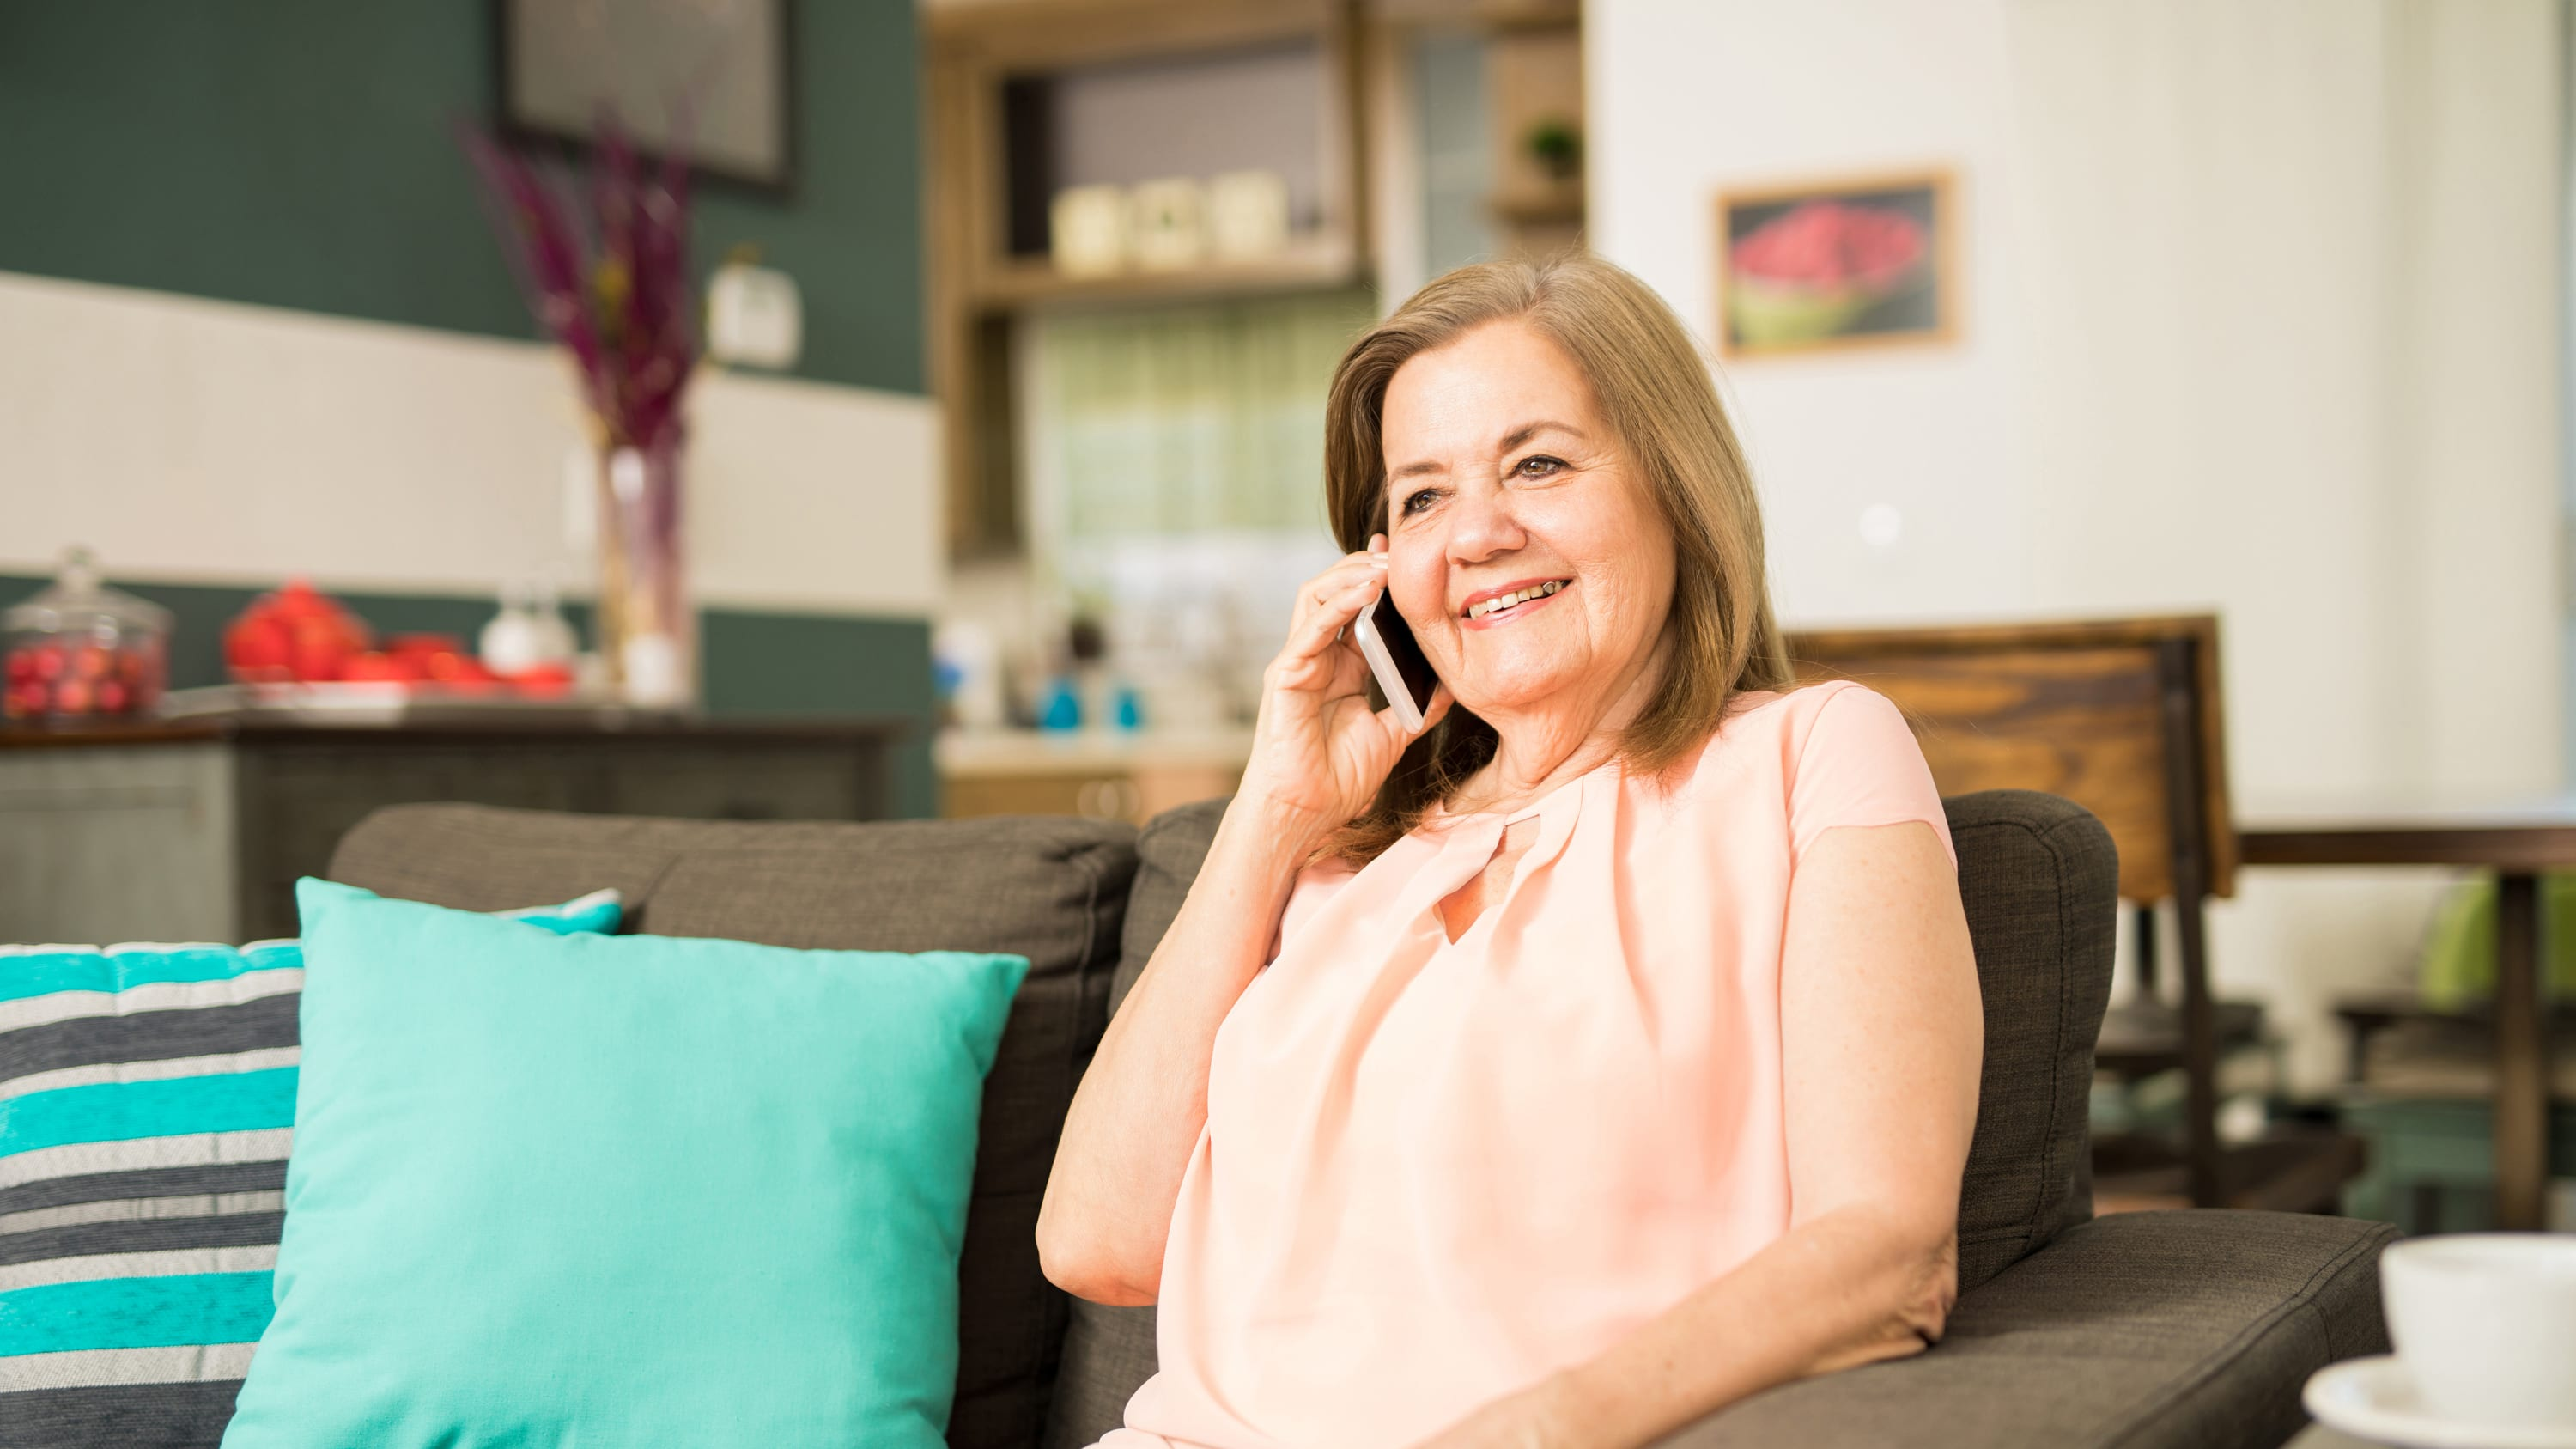 A middle-aged woman who may have heart arrhythmia sits on a couch talking on a cell phone.